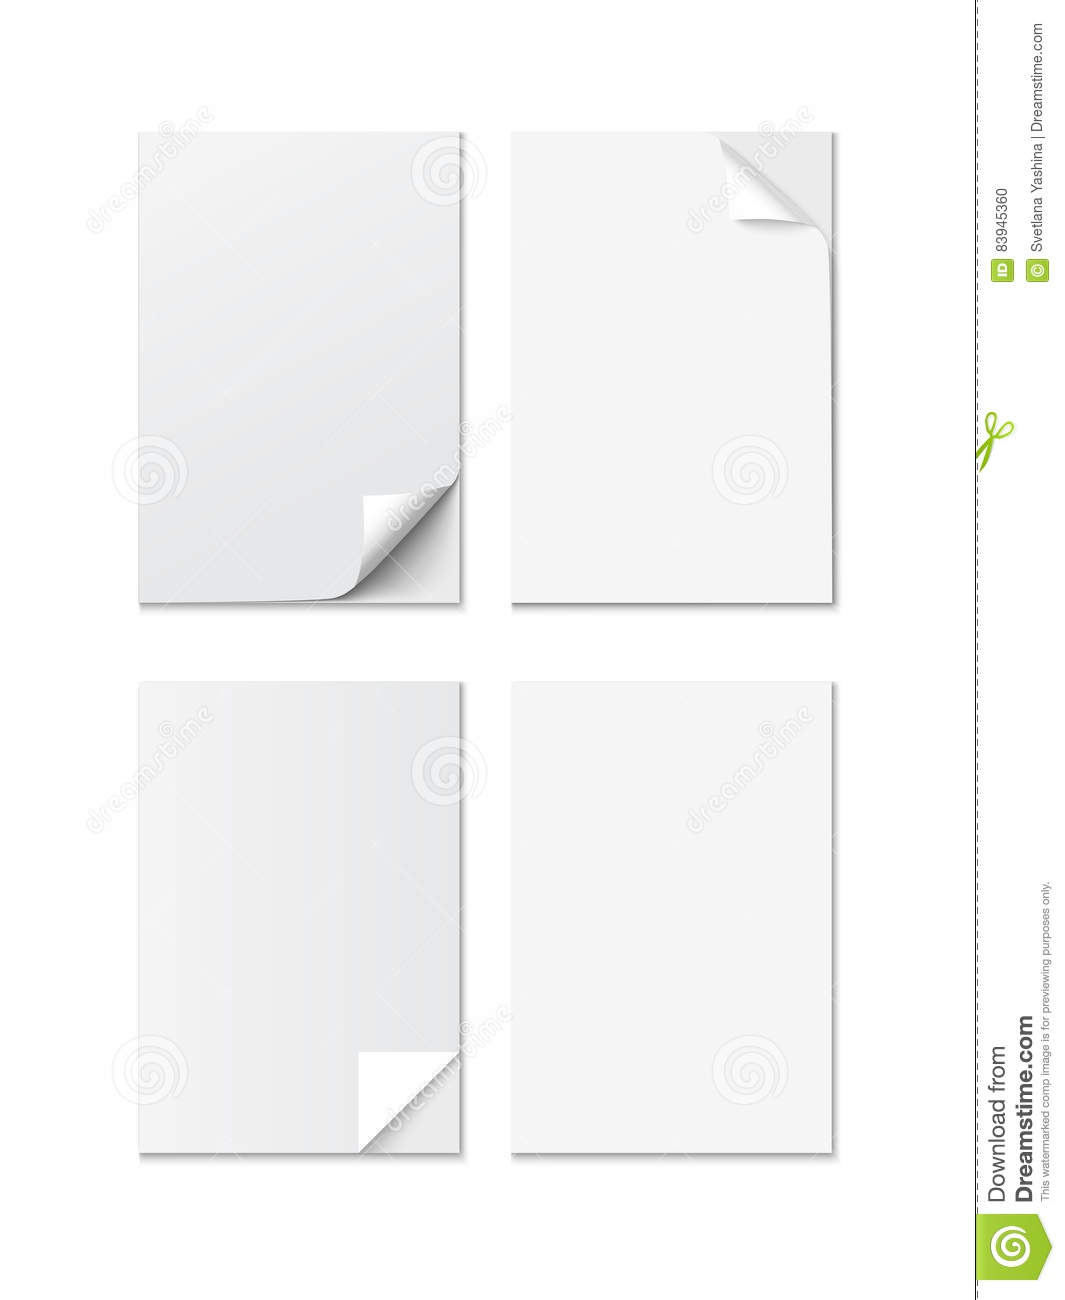 microsoft office portfolio template - set of white a4 size paper sheet with different curled